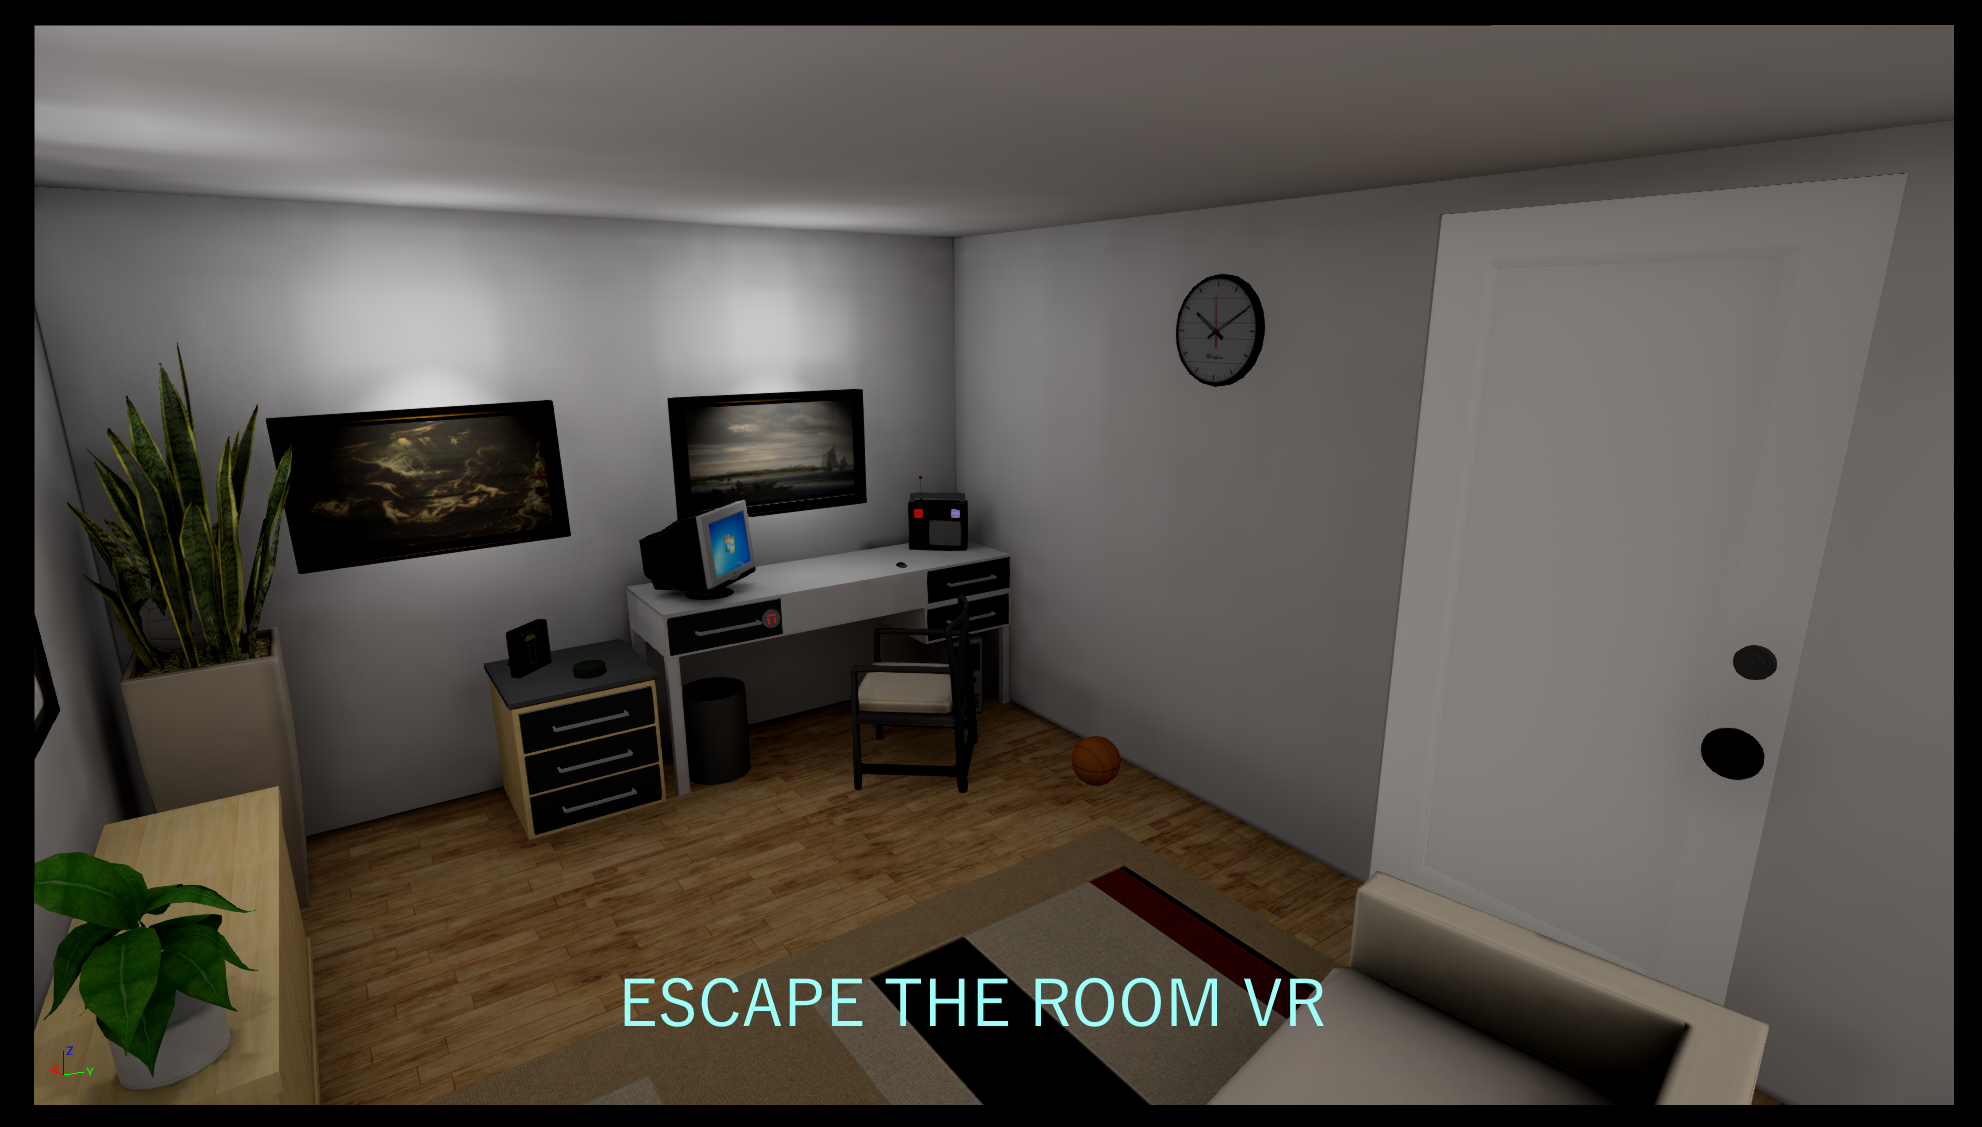 Escape the room vr by crackpotgumption for Escape room gadgets